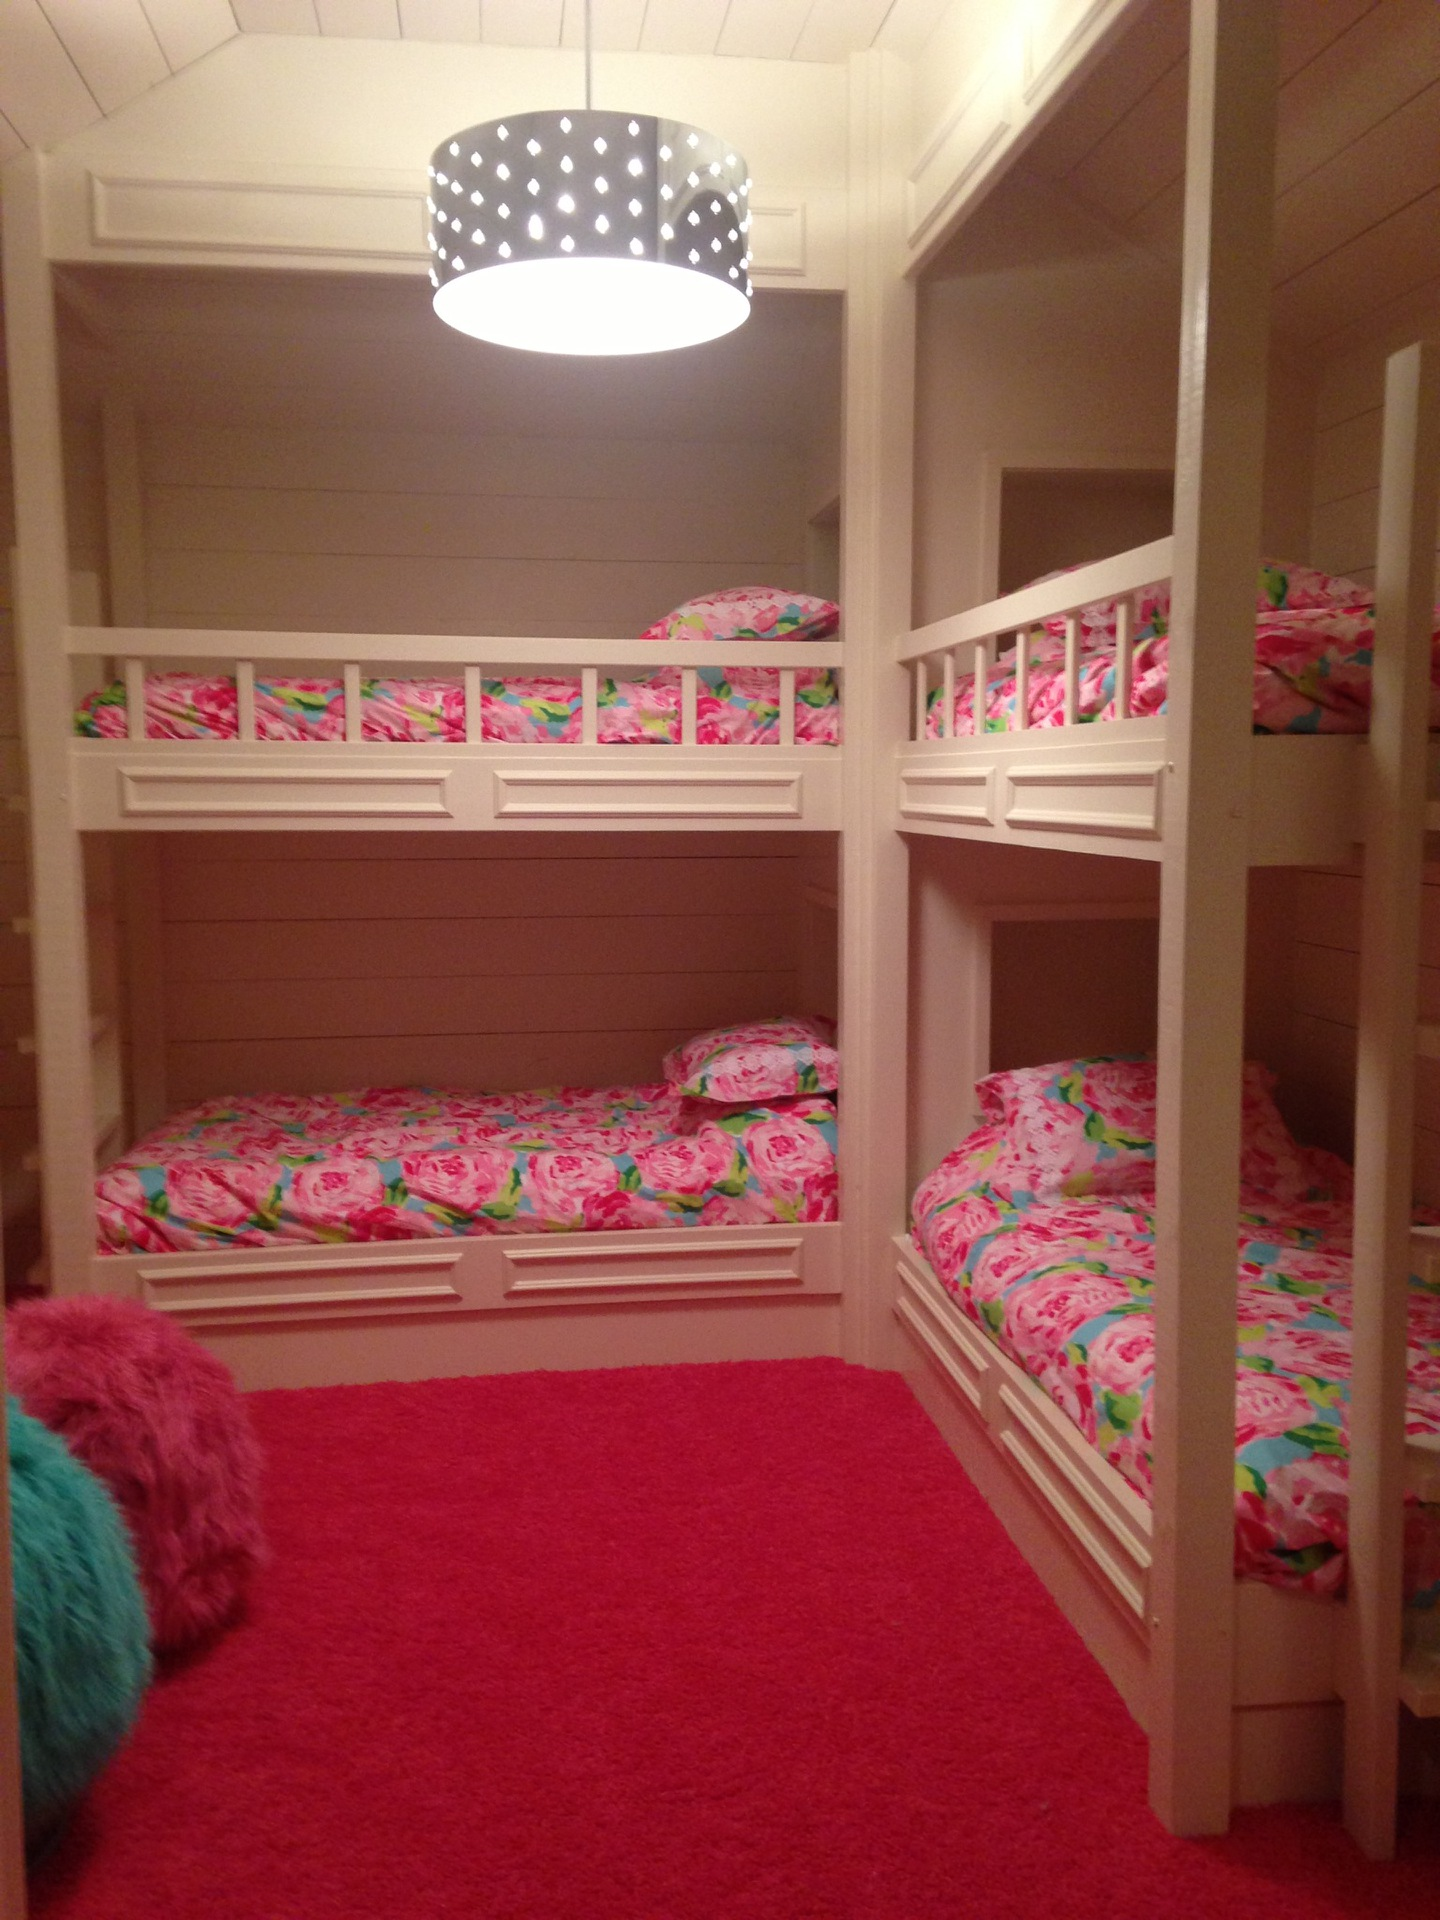 Built in bunk beds real vinings buckhead Bunk room designs